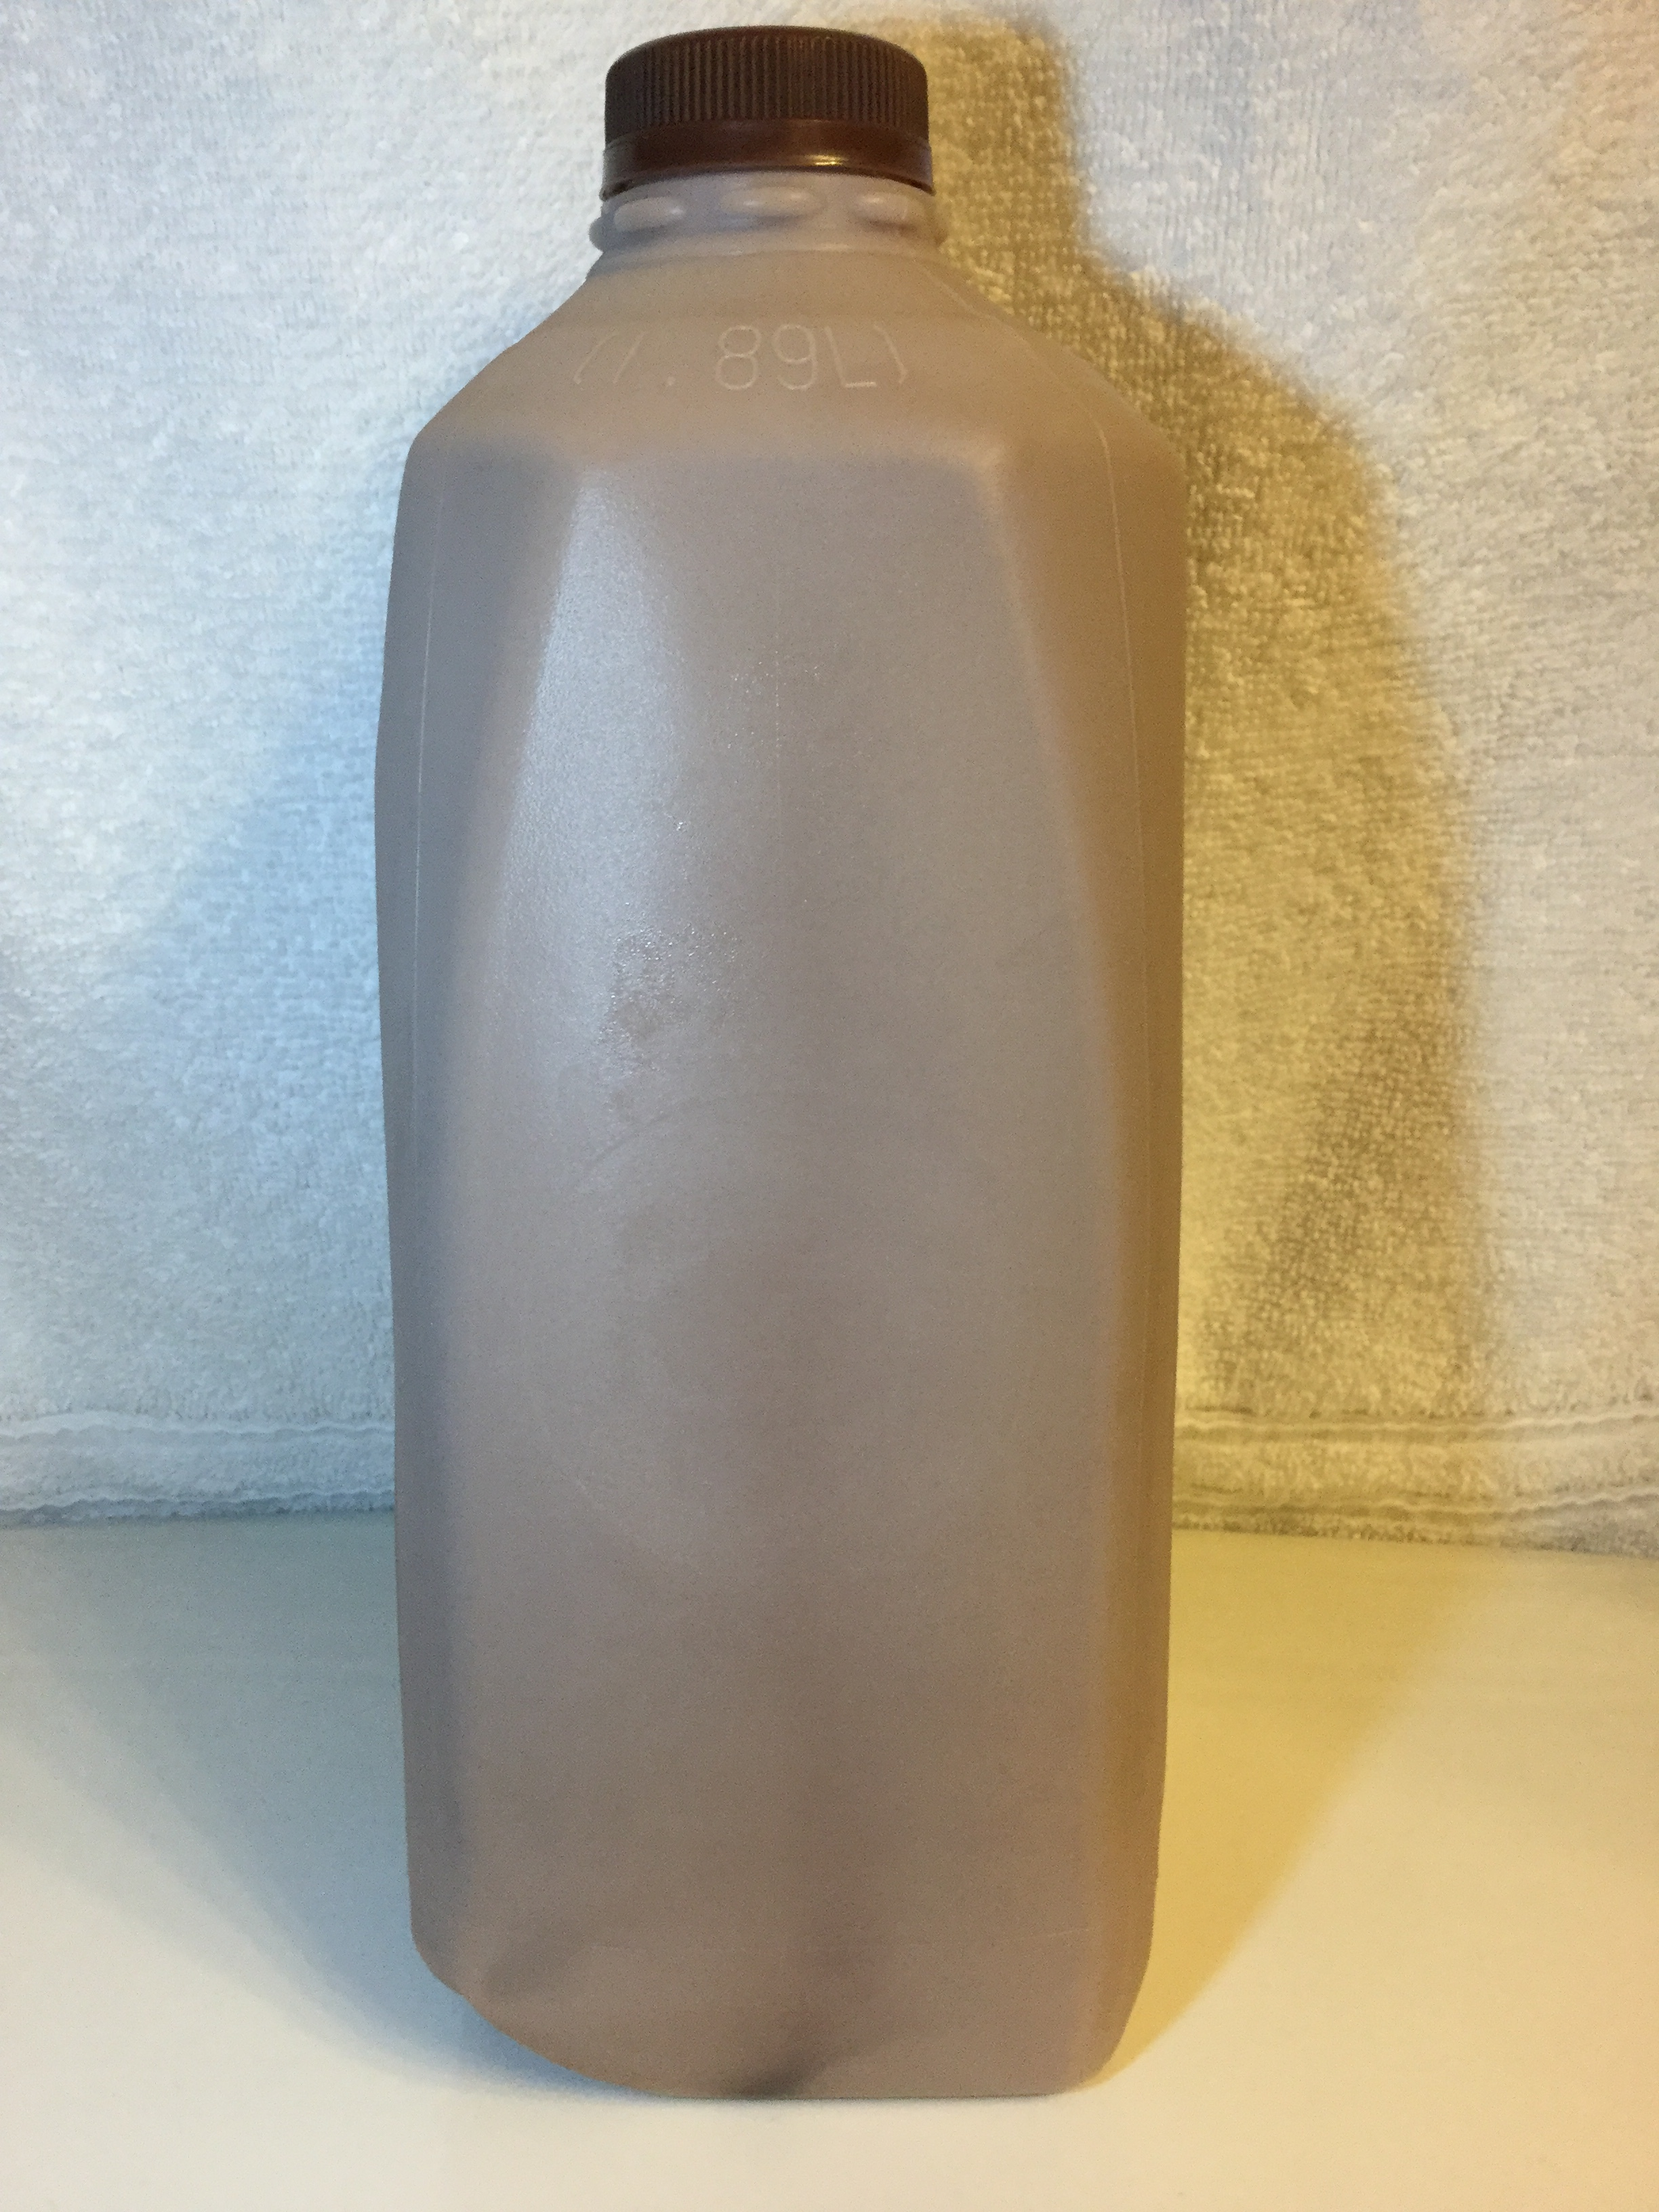 Giant Low Fat Chocolate Milk Side 1